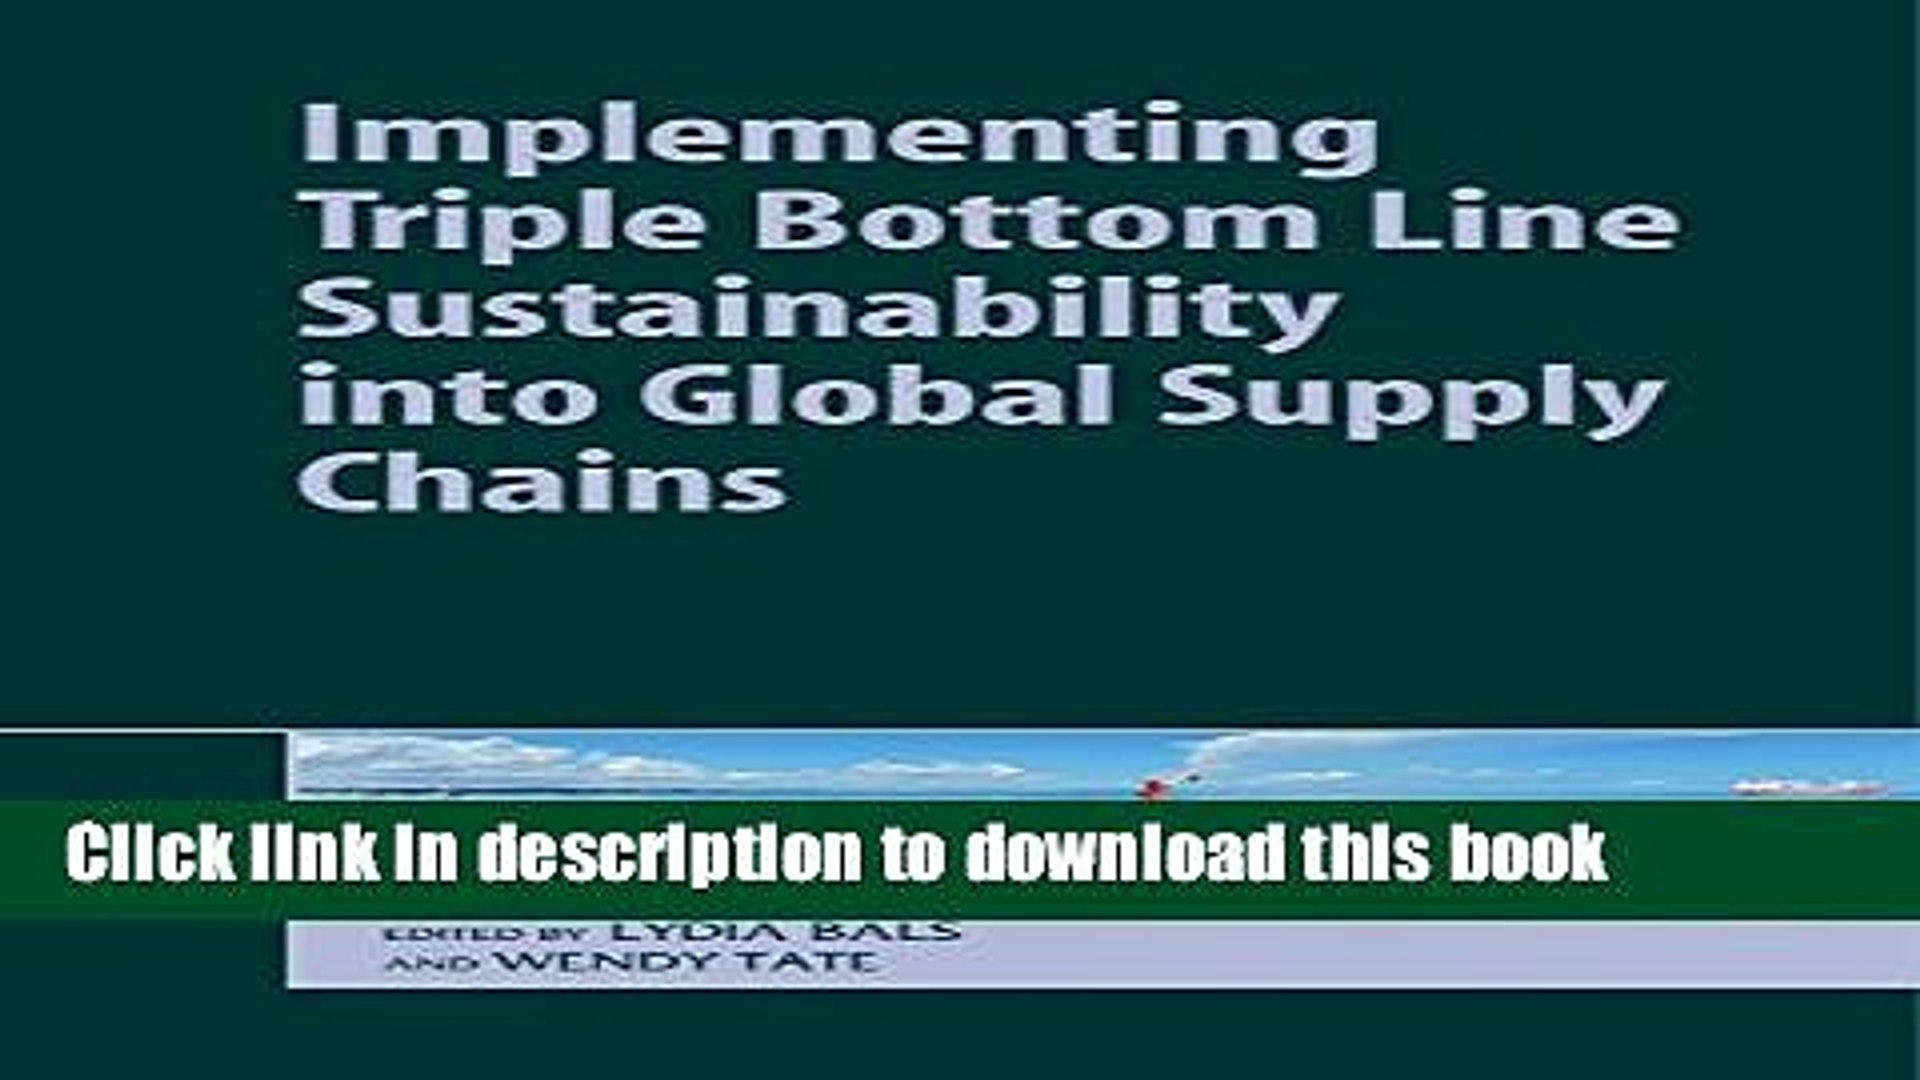 [Download] Implementing Triple Bottom Line Sustainability into Global Supply Chains Hardcover